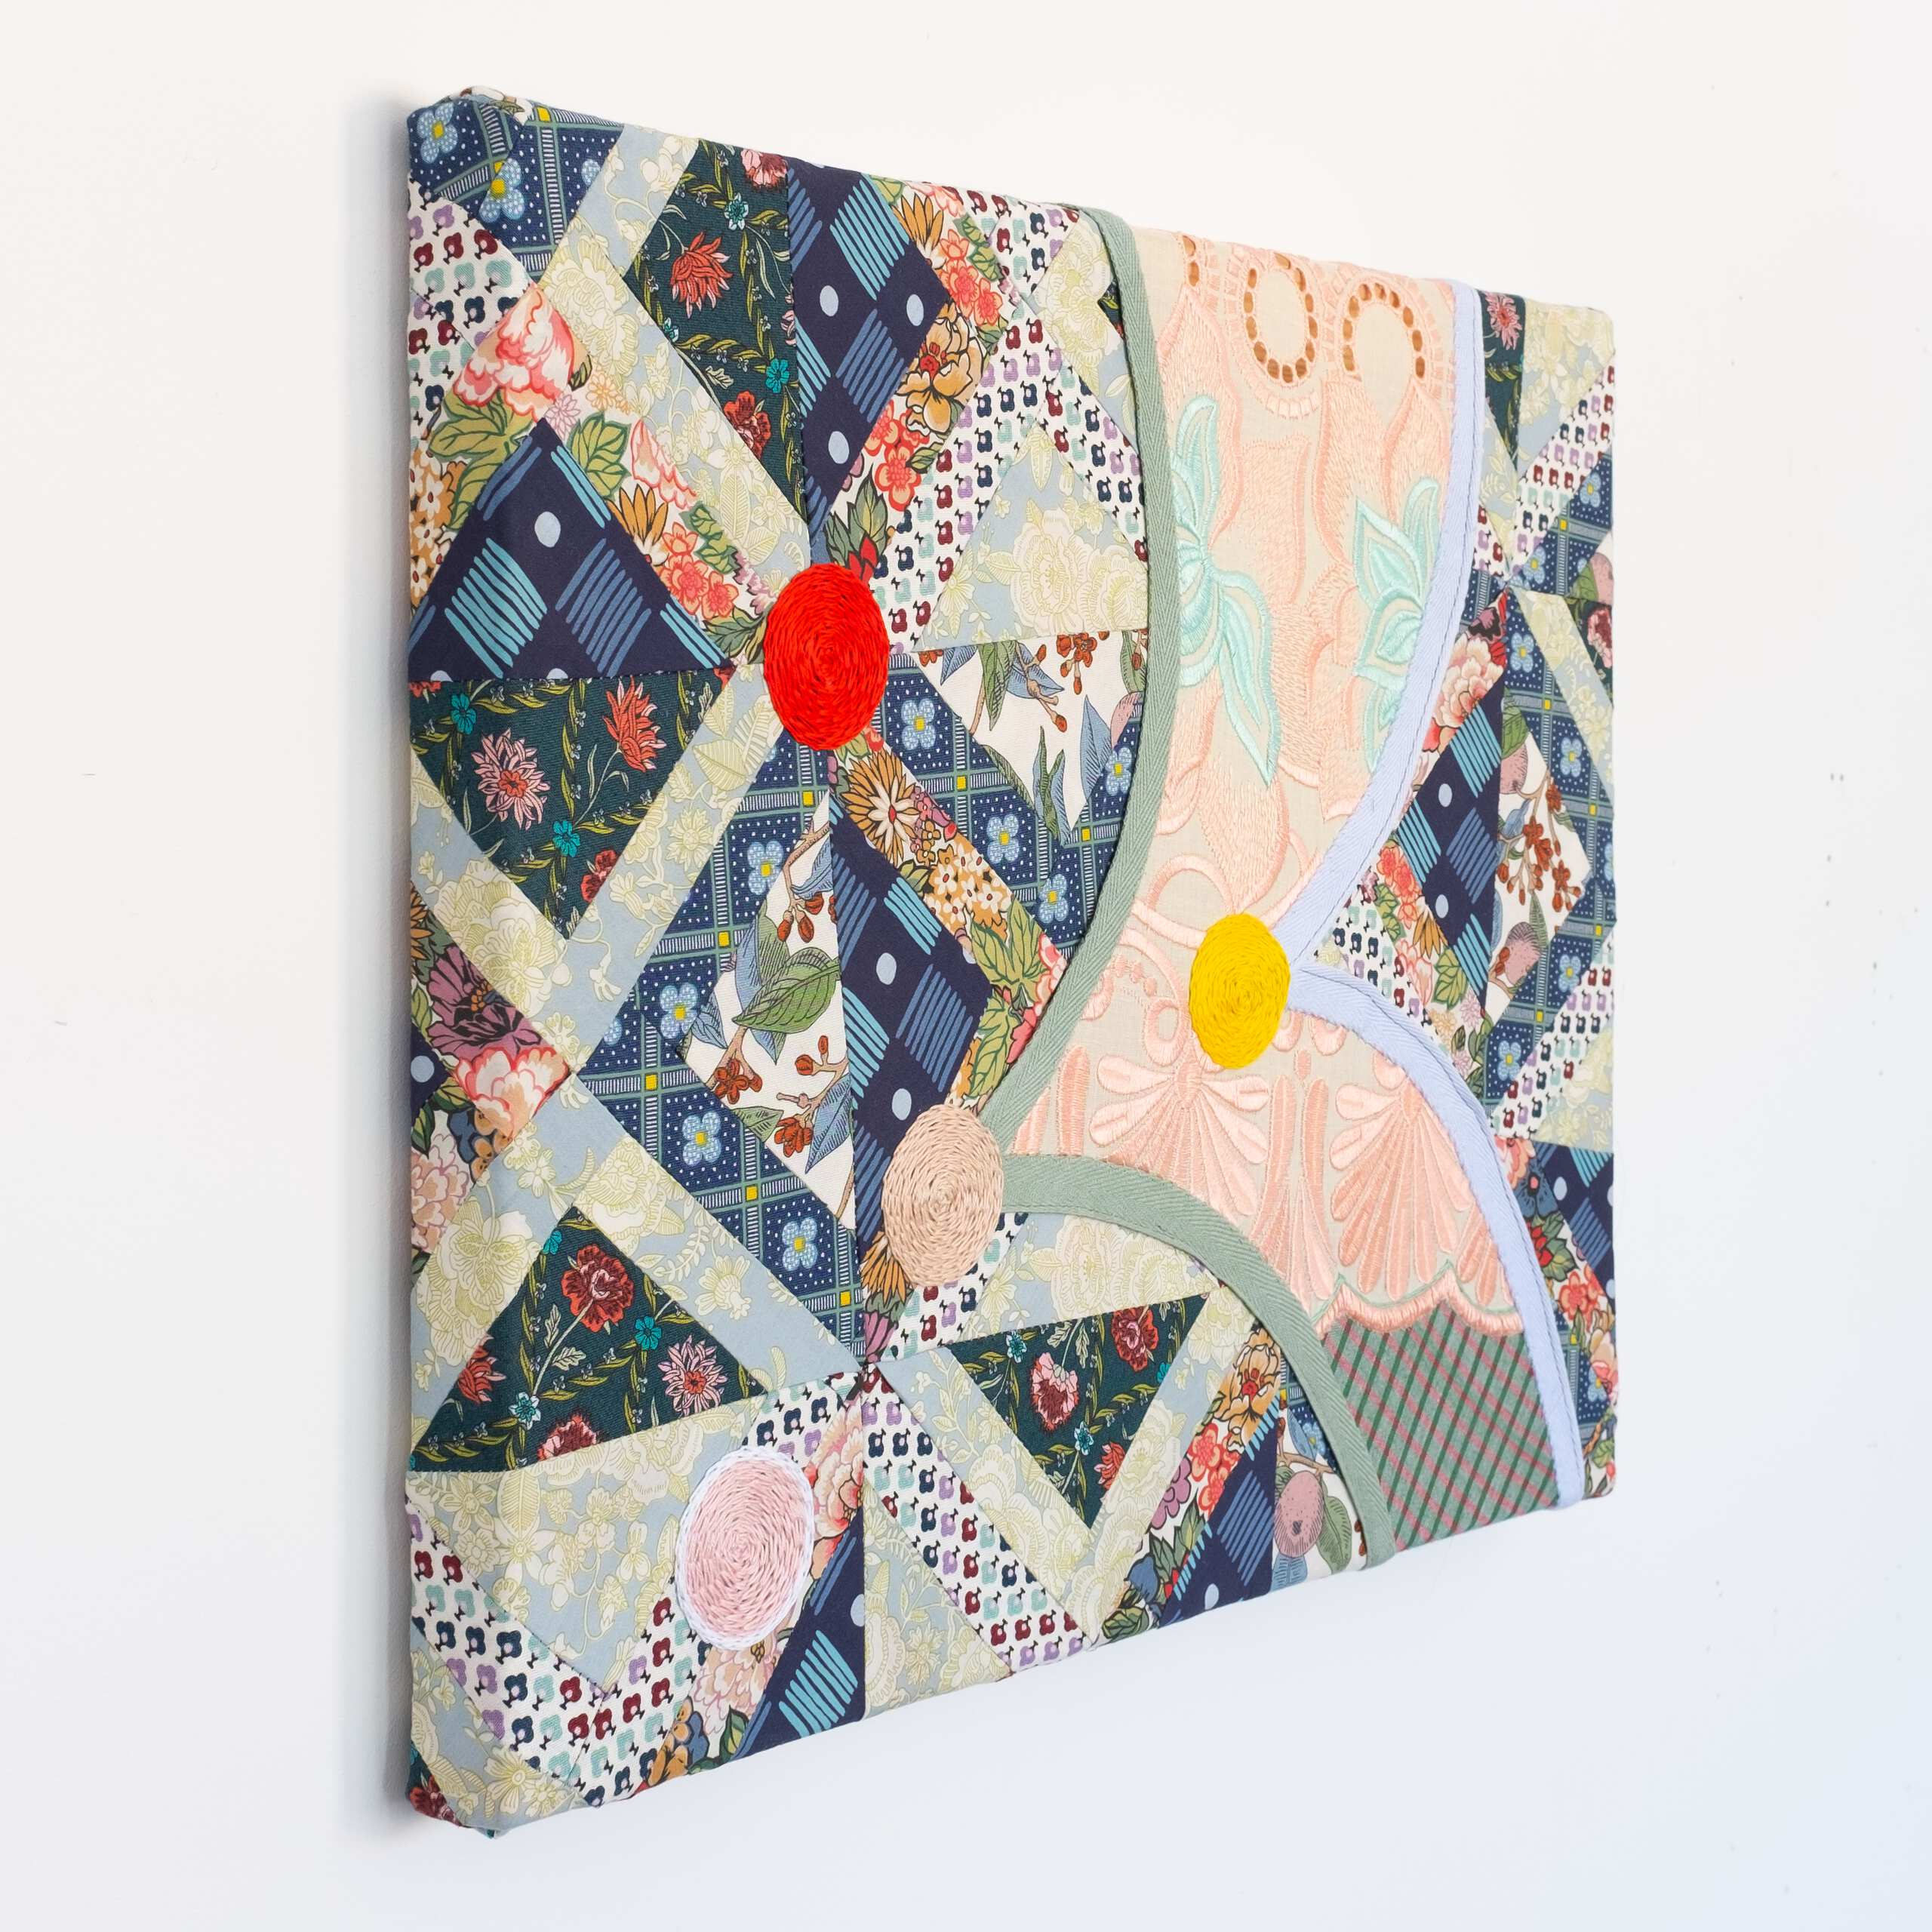 Quilted Composition (awkward painting 2), Sewn fabric, hand-embroidered cotton thread, 2020